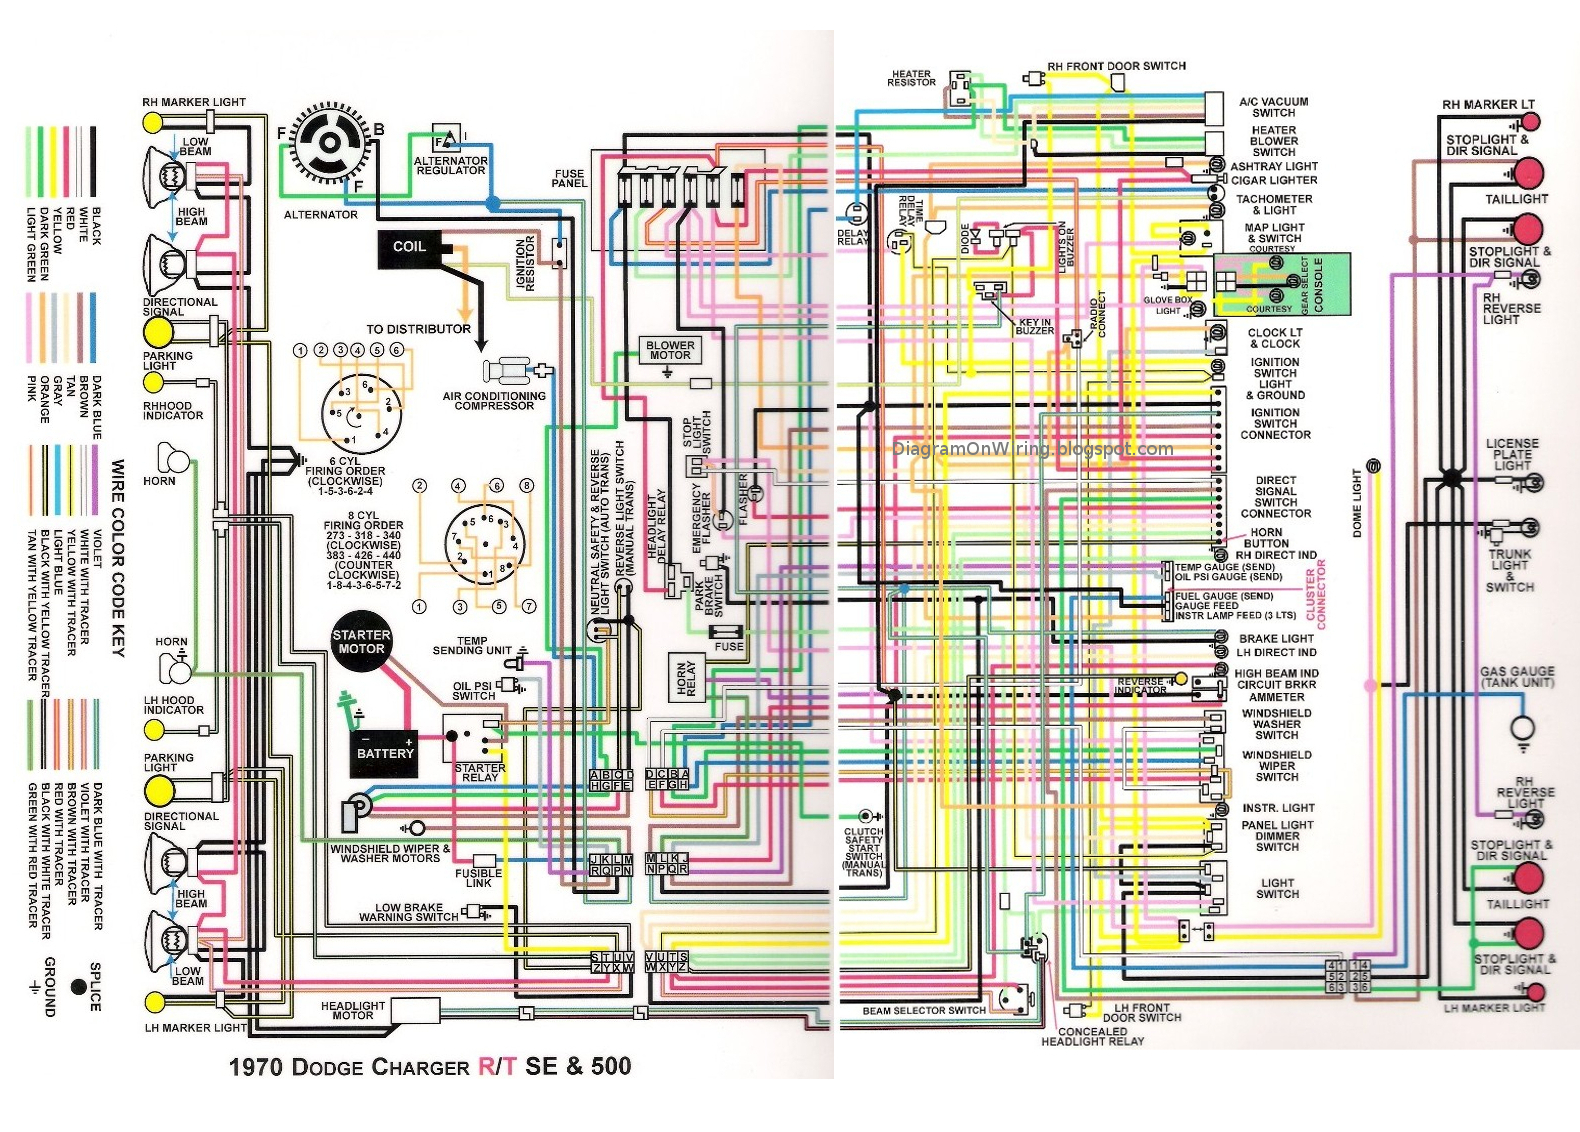 chevy wiring diagrams 3 freeautomechanic types of org charts 1970 Chevy Nova Wiring Diagram cool 1972 chevelle wiring diagram pictures inspiration complete wiring diagram for 1970 1970 Plymouth Wiring Diagram